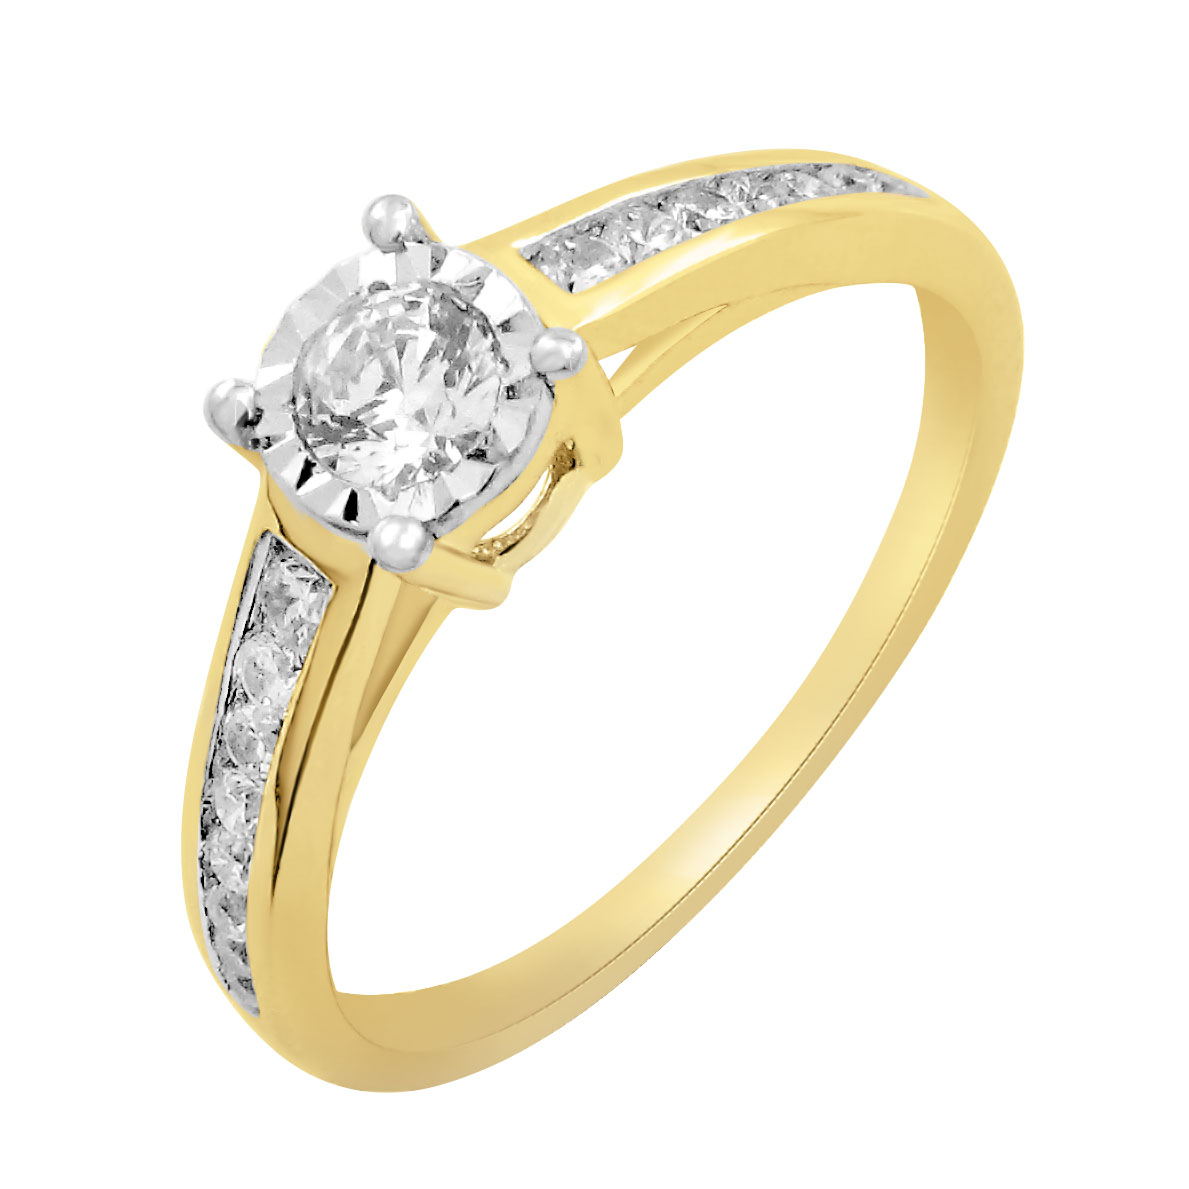 9ct Yellow Gold 1/3 Carat Diamond Solitaire Ring